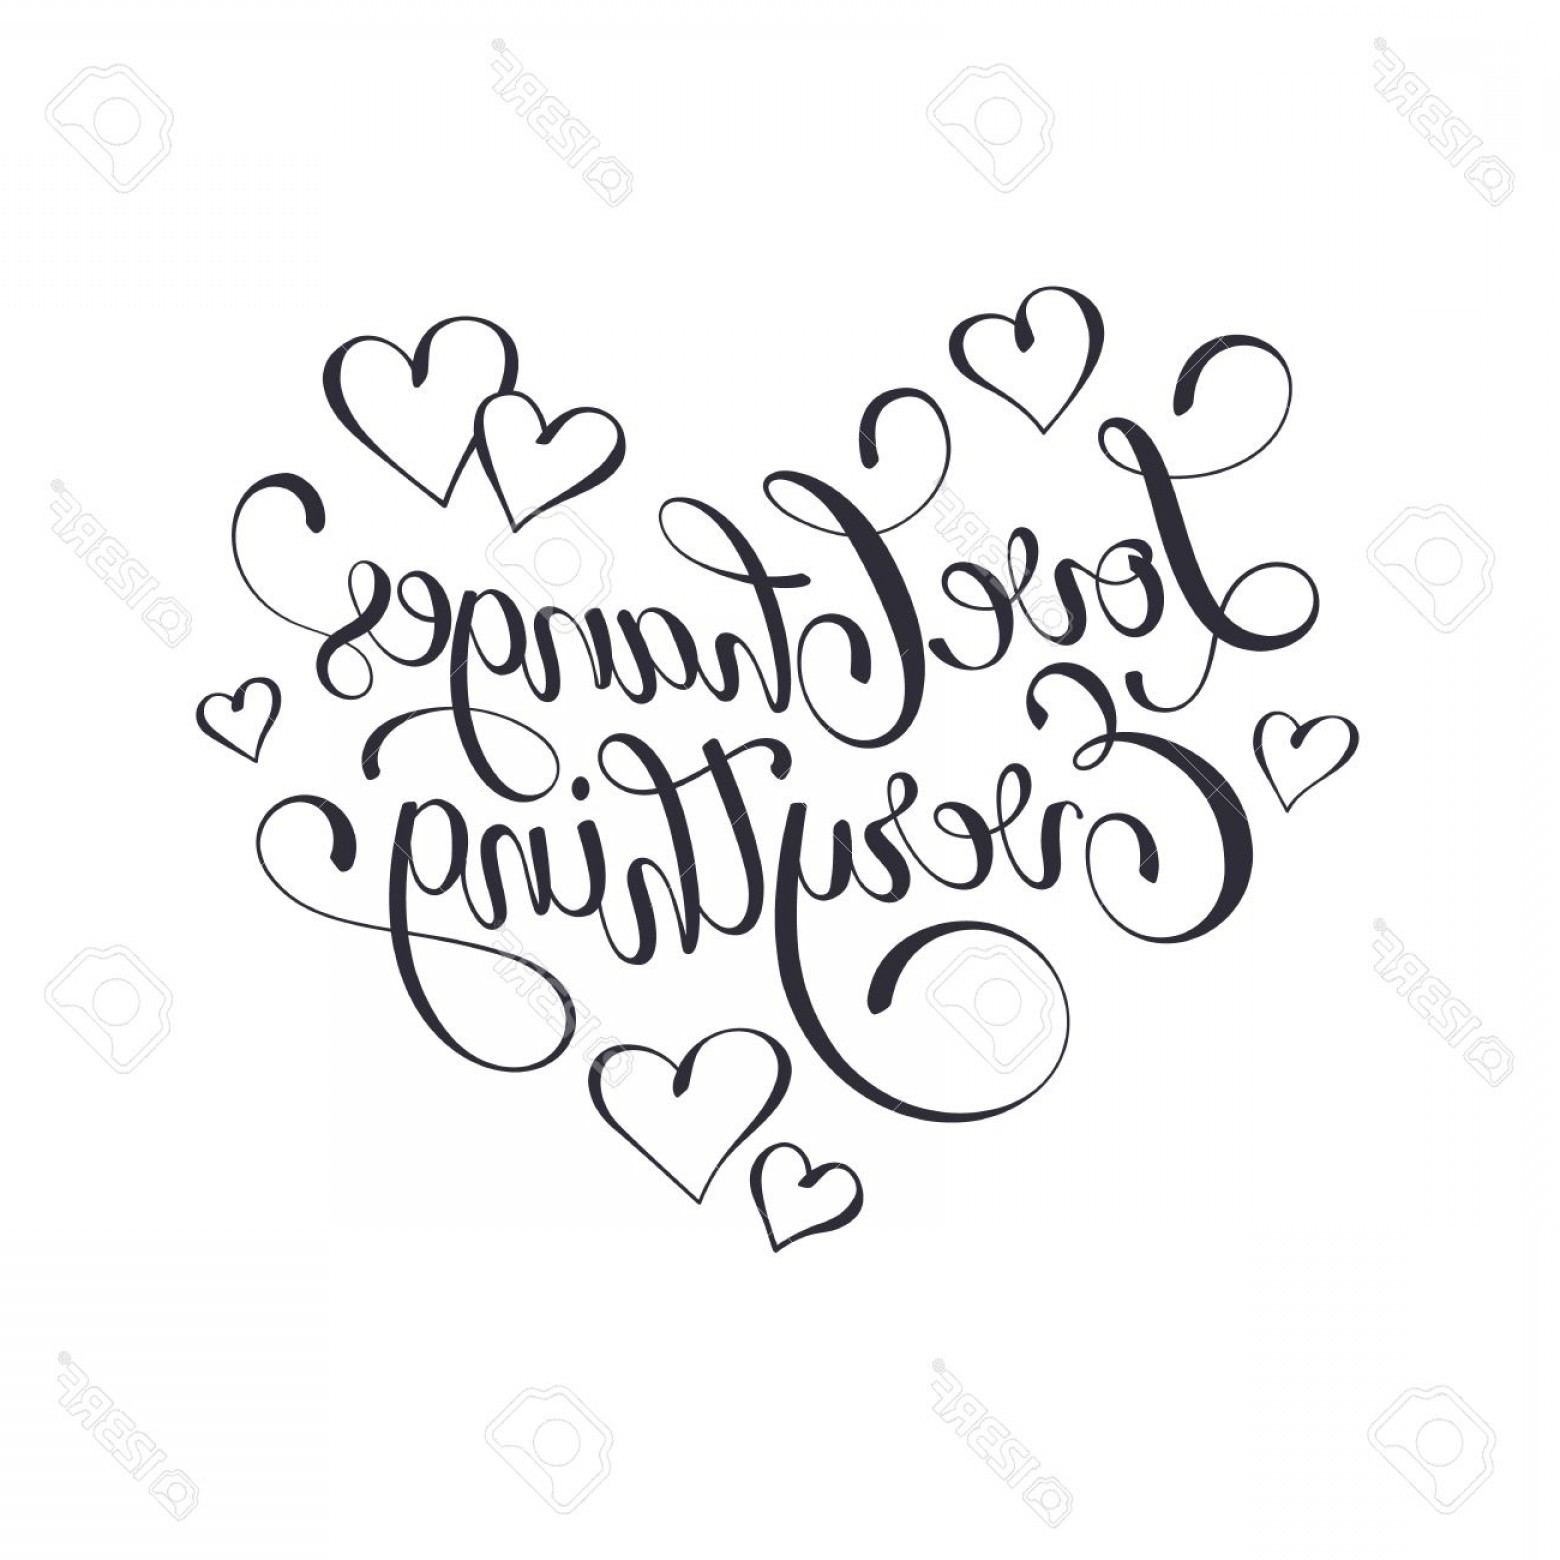 Love Heart Swirl Vector: Photostock Vector Inspiring Lettering Black On White Love Changes Everything Positive Quote With Swirls In Heart Shape